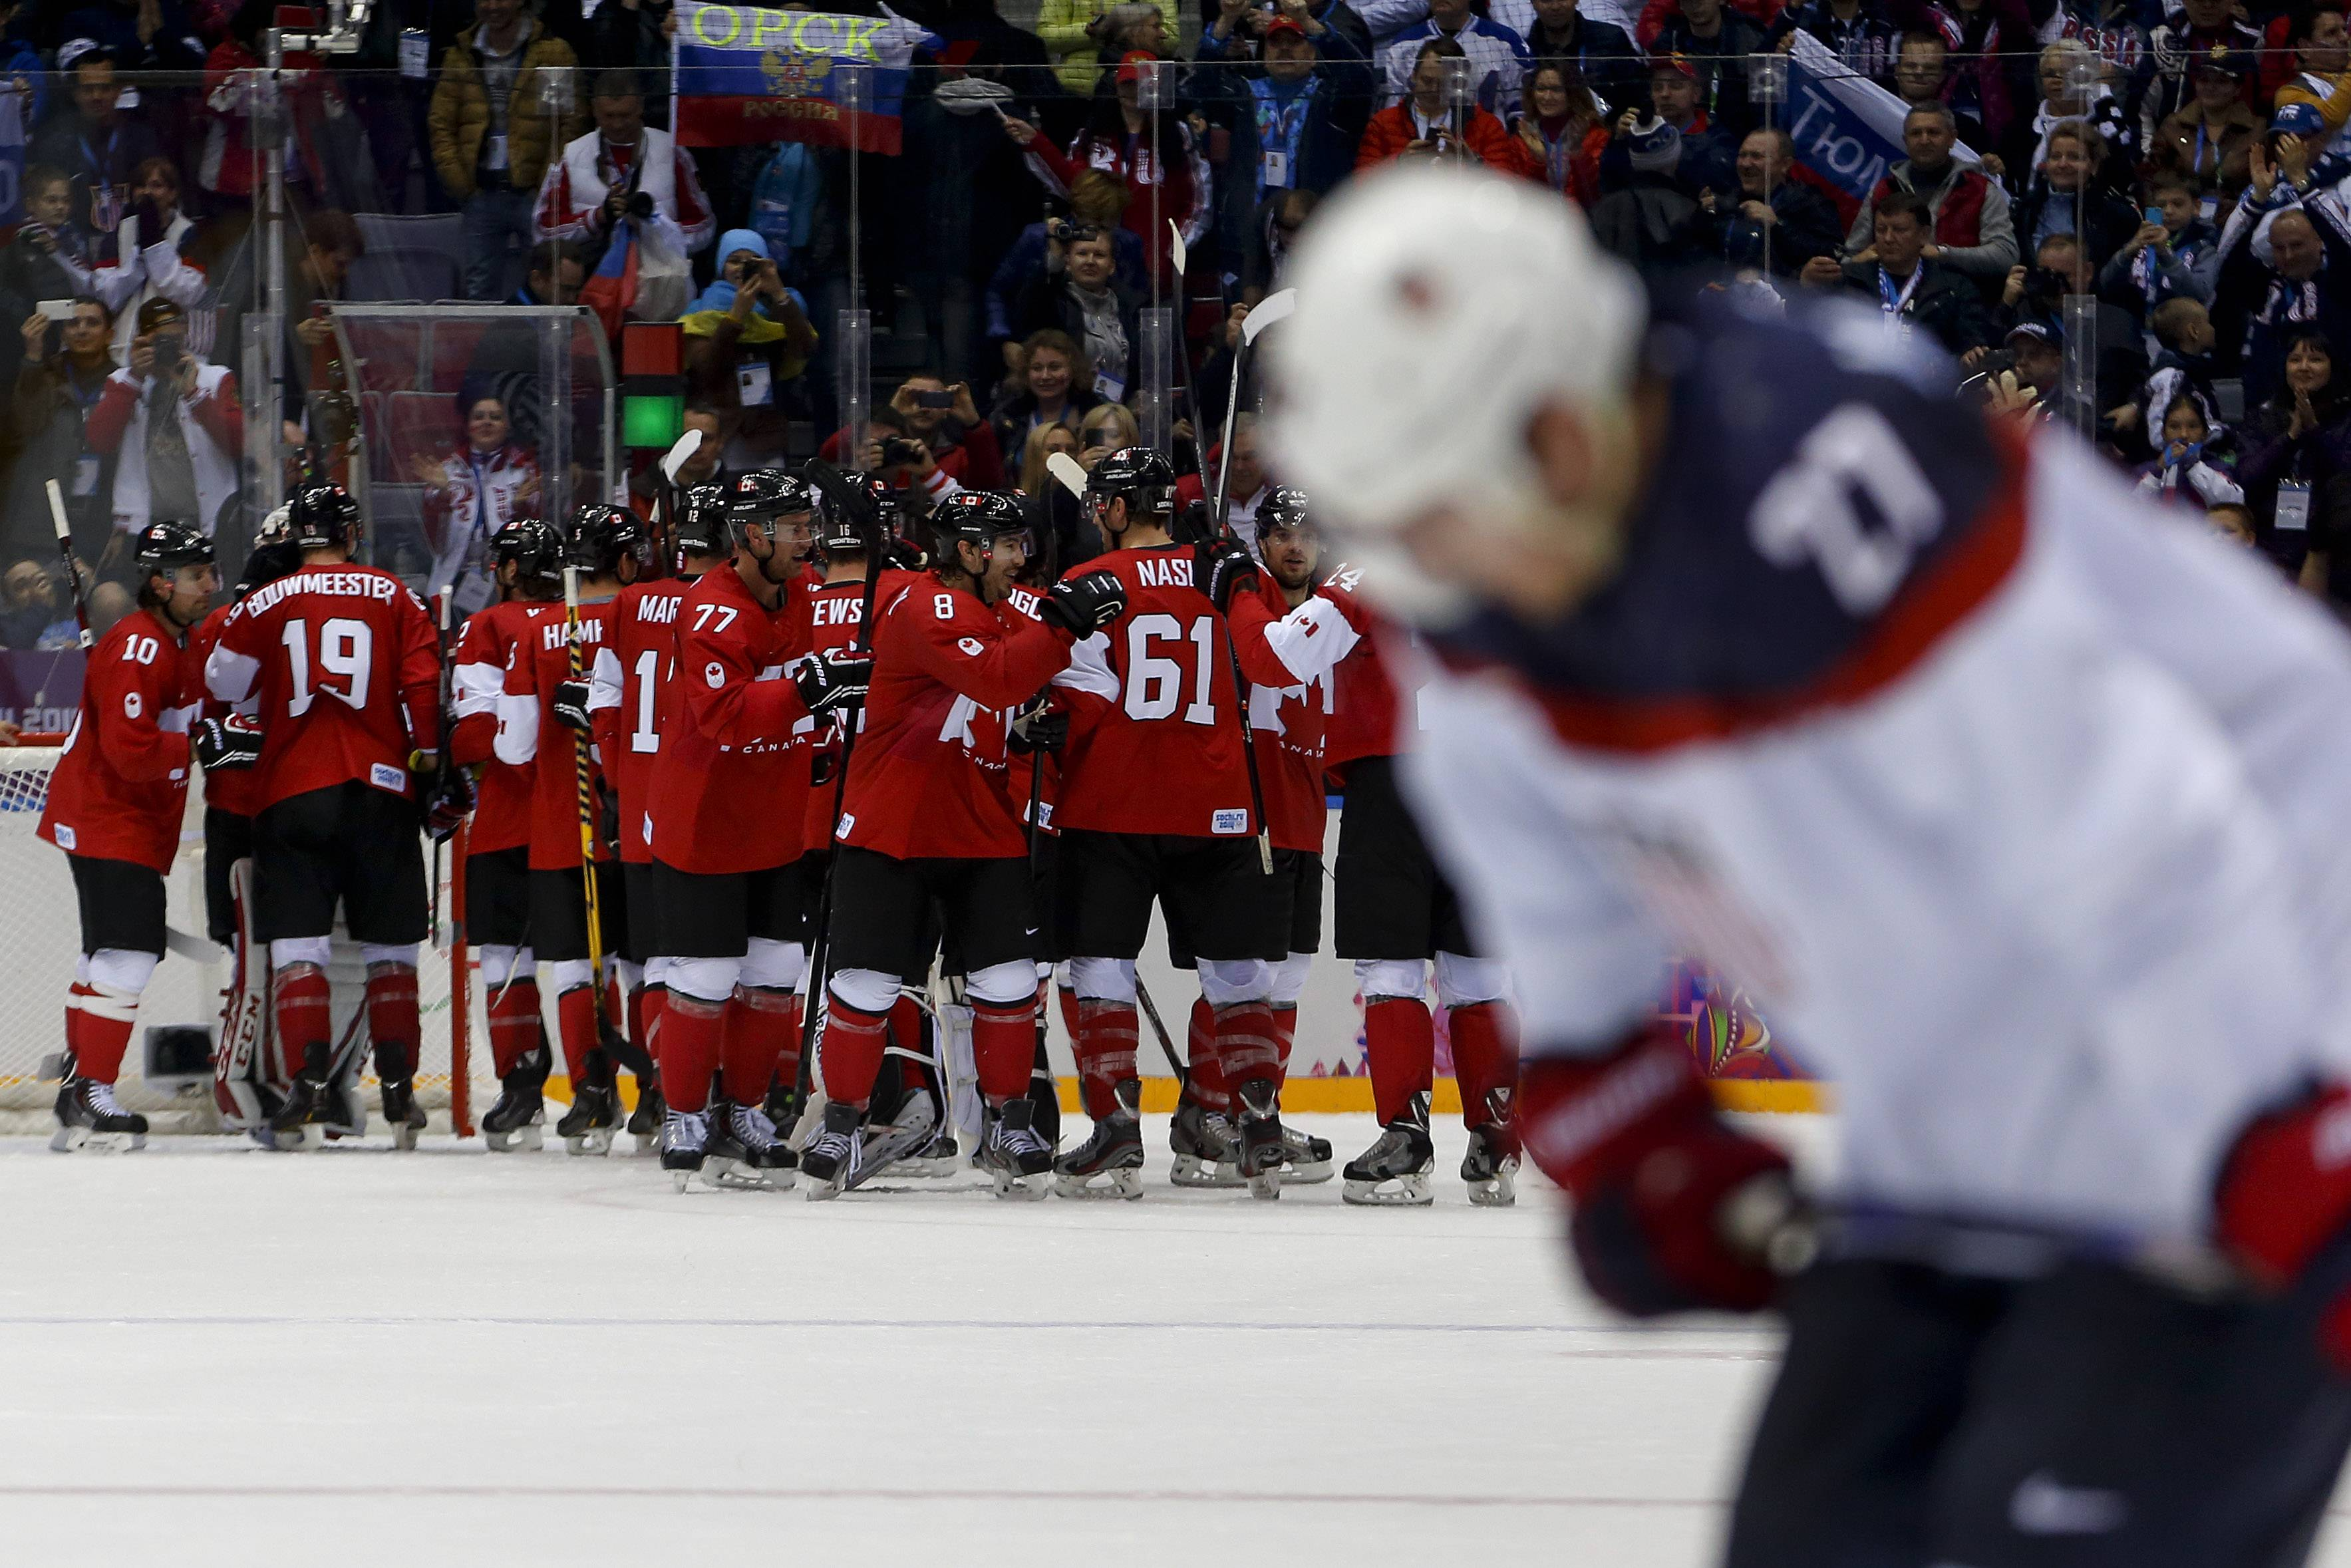 Team Canada celebrates after beating the USA 1-0 in a men's semifinal ice hockey game.